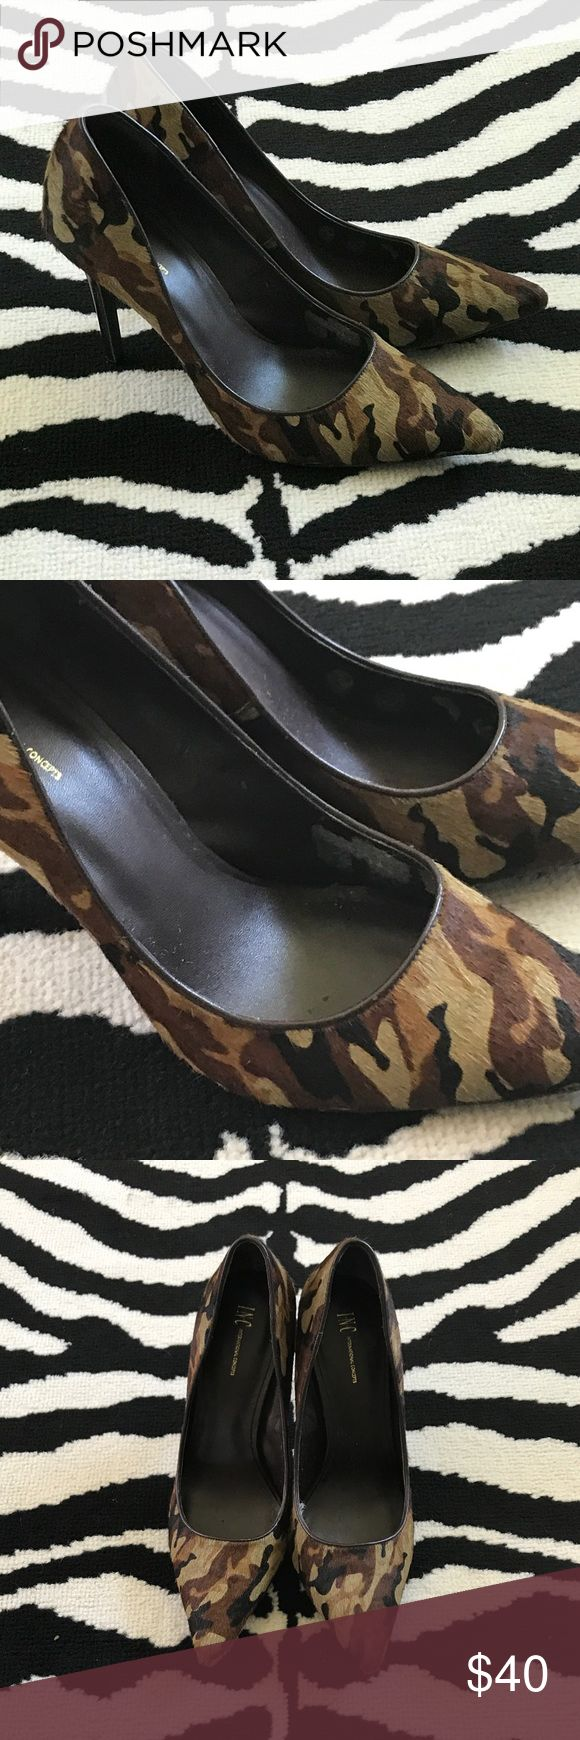 "Camouflage Heels Real calf hair camouflage heels. Pointy toe pumps, some hair shedding on toe not noticeable when wearing. Shoe lightly worn but worn in high humidity which caused slight peeling of synthetic interior. See pics.still a great shoe with great sole. 4"" heel. INC International Concepts Shoes Heels"